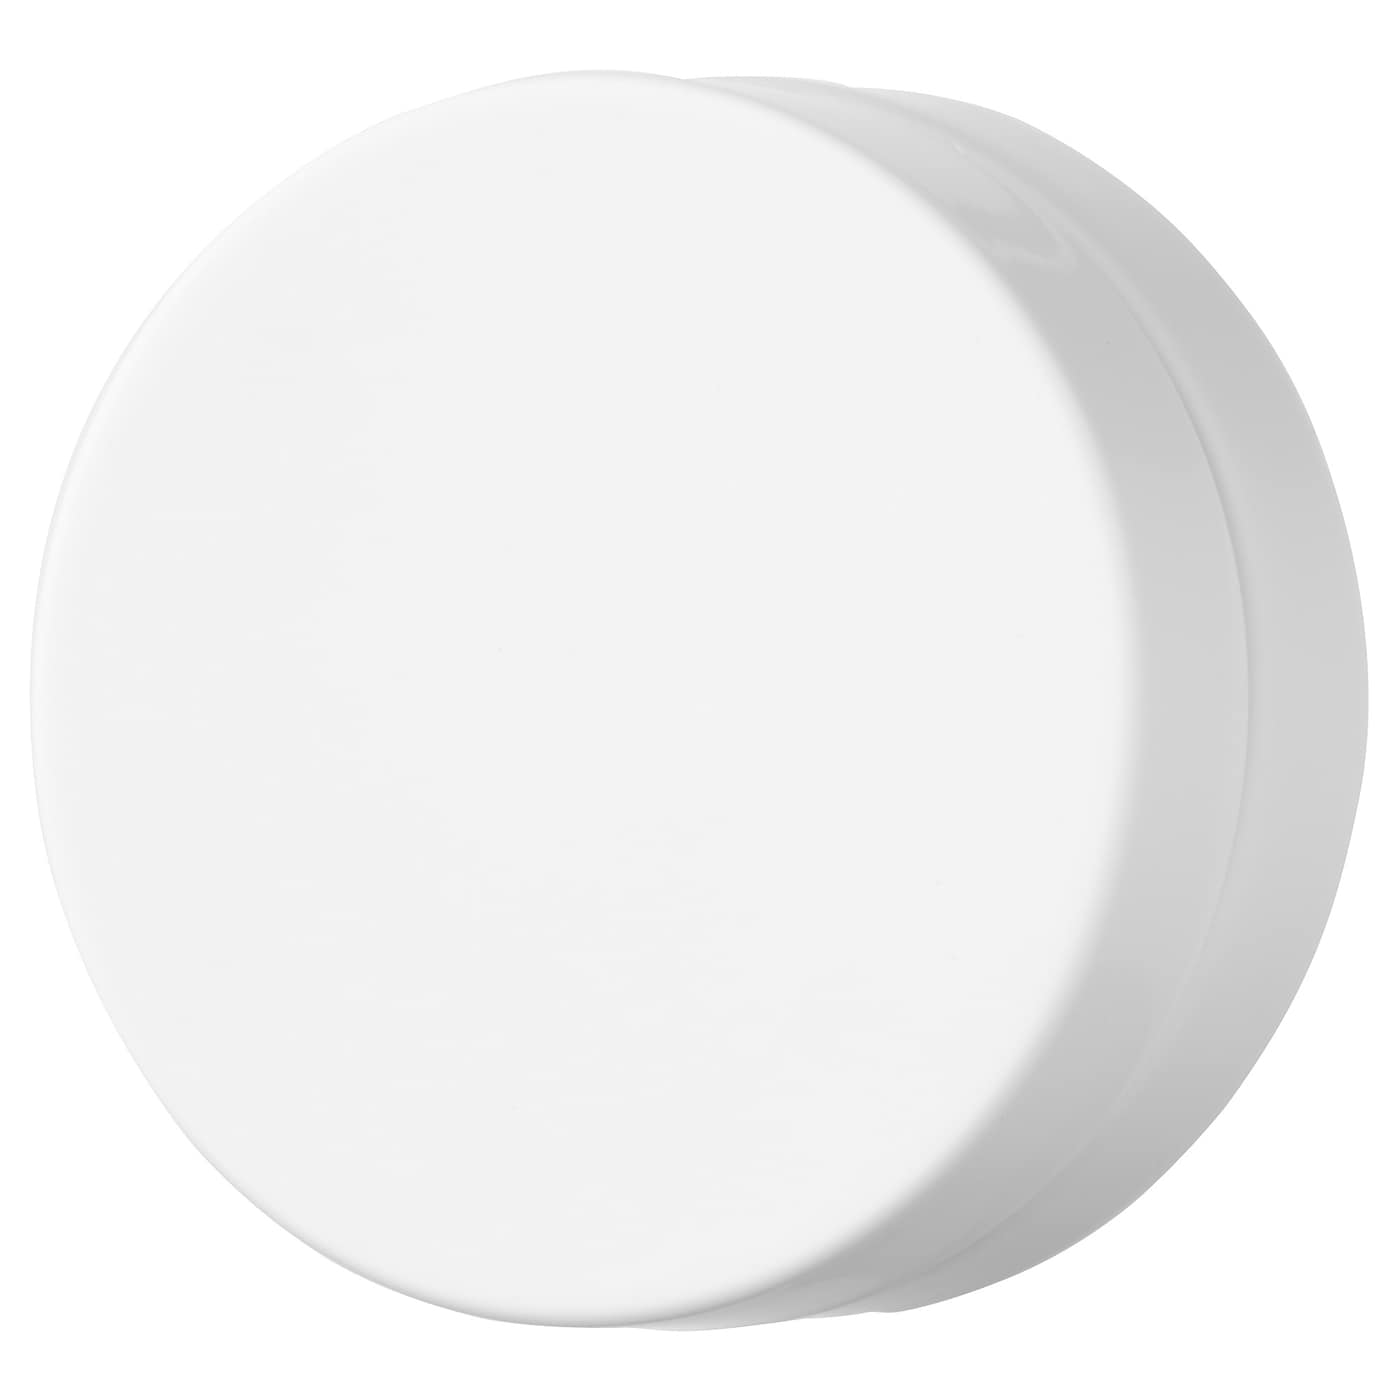 IKEA TRÅDFRI wireless dimmer